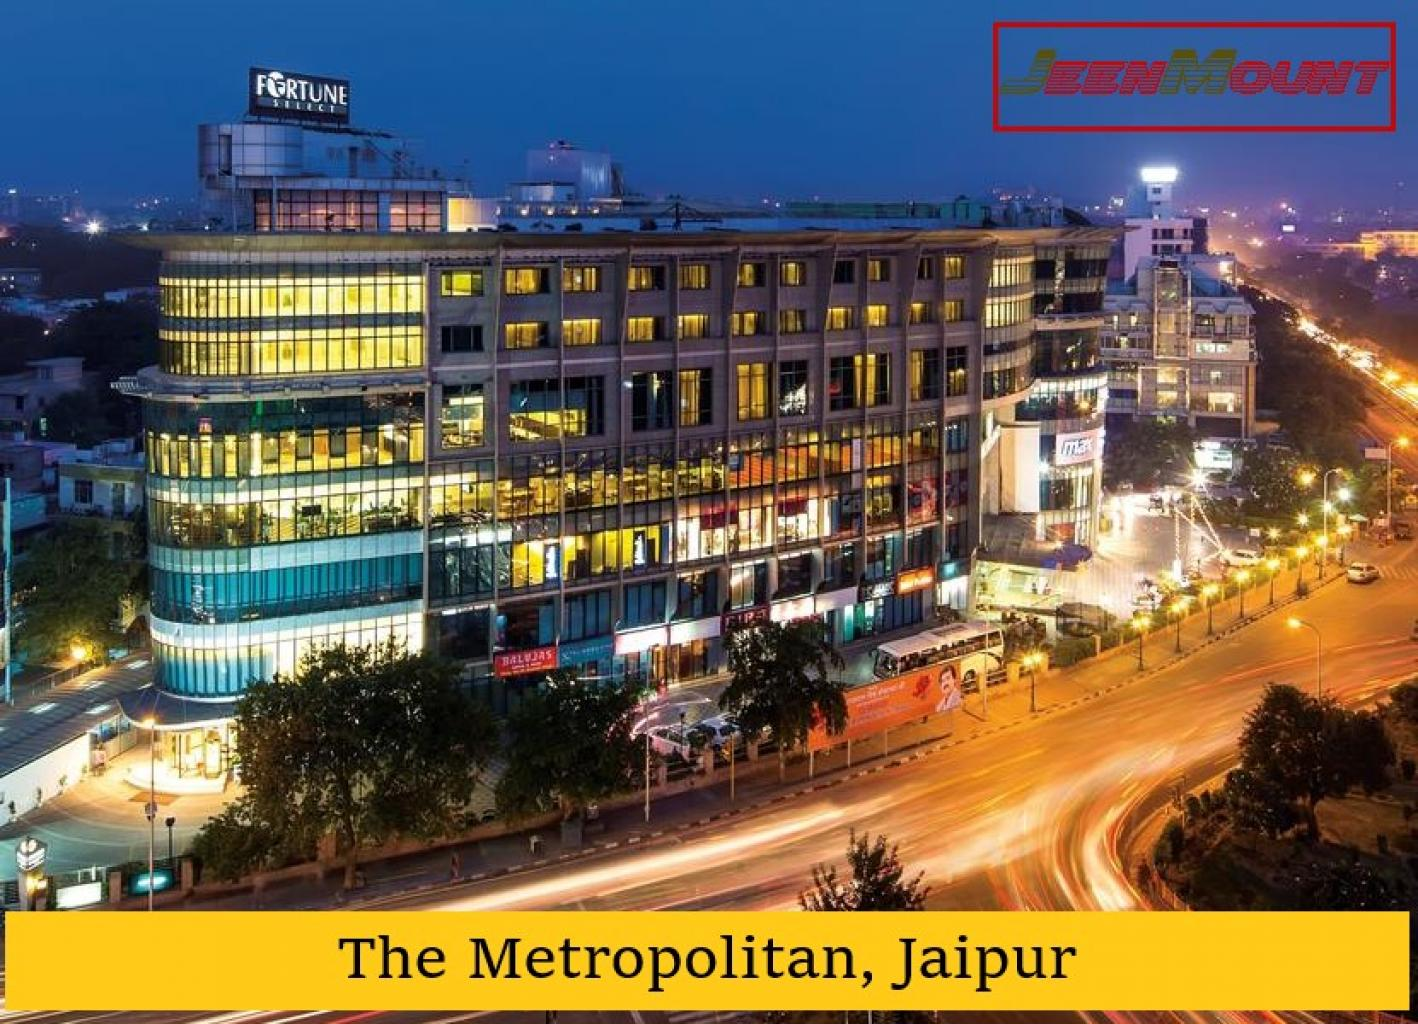 The Metropolitan Shopping Mall Jaipur